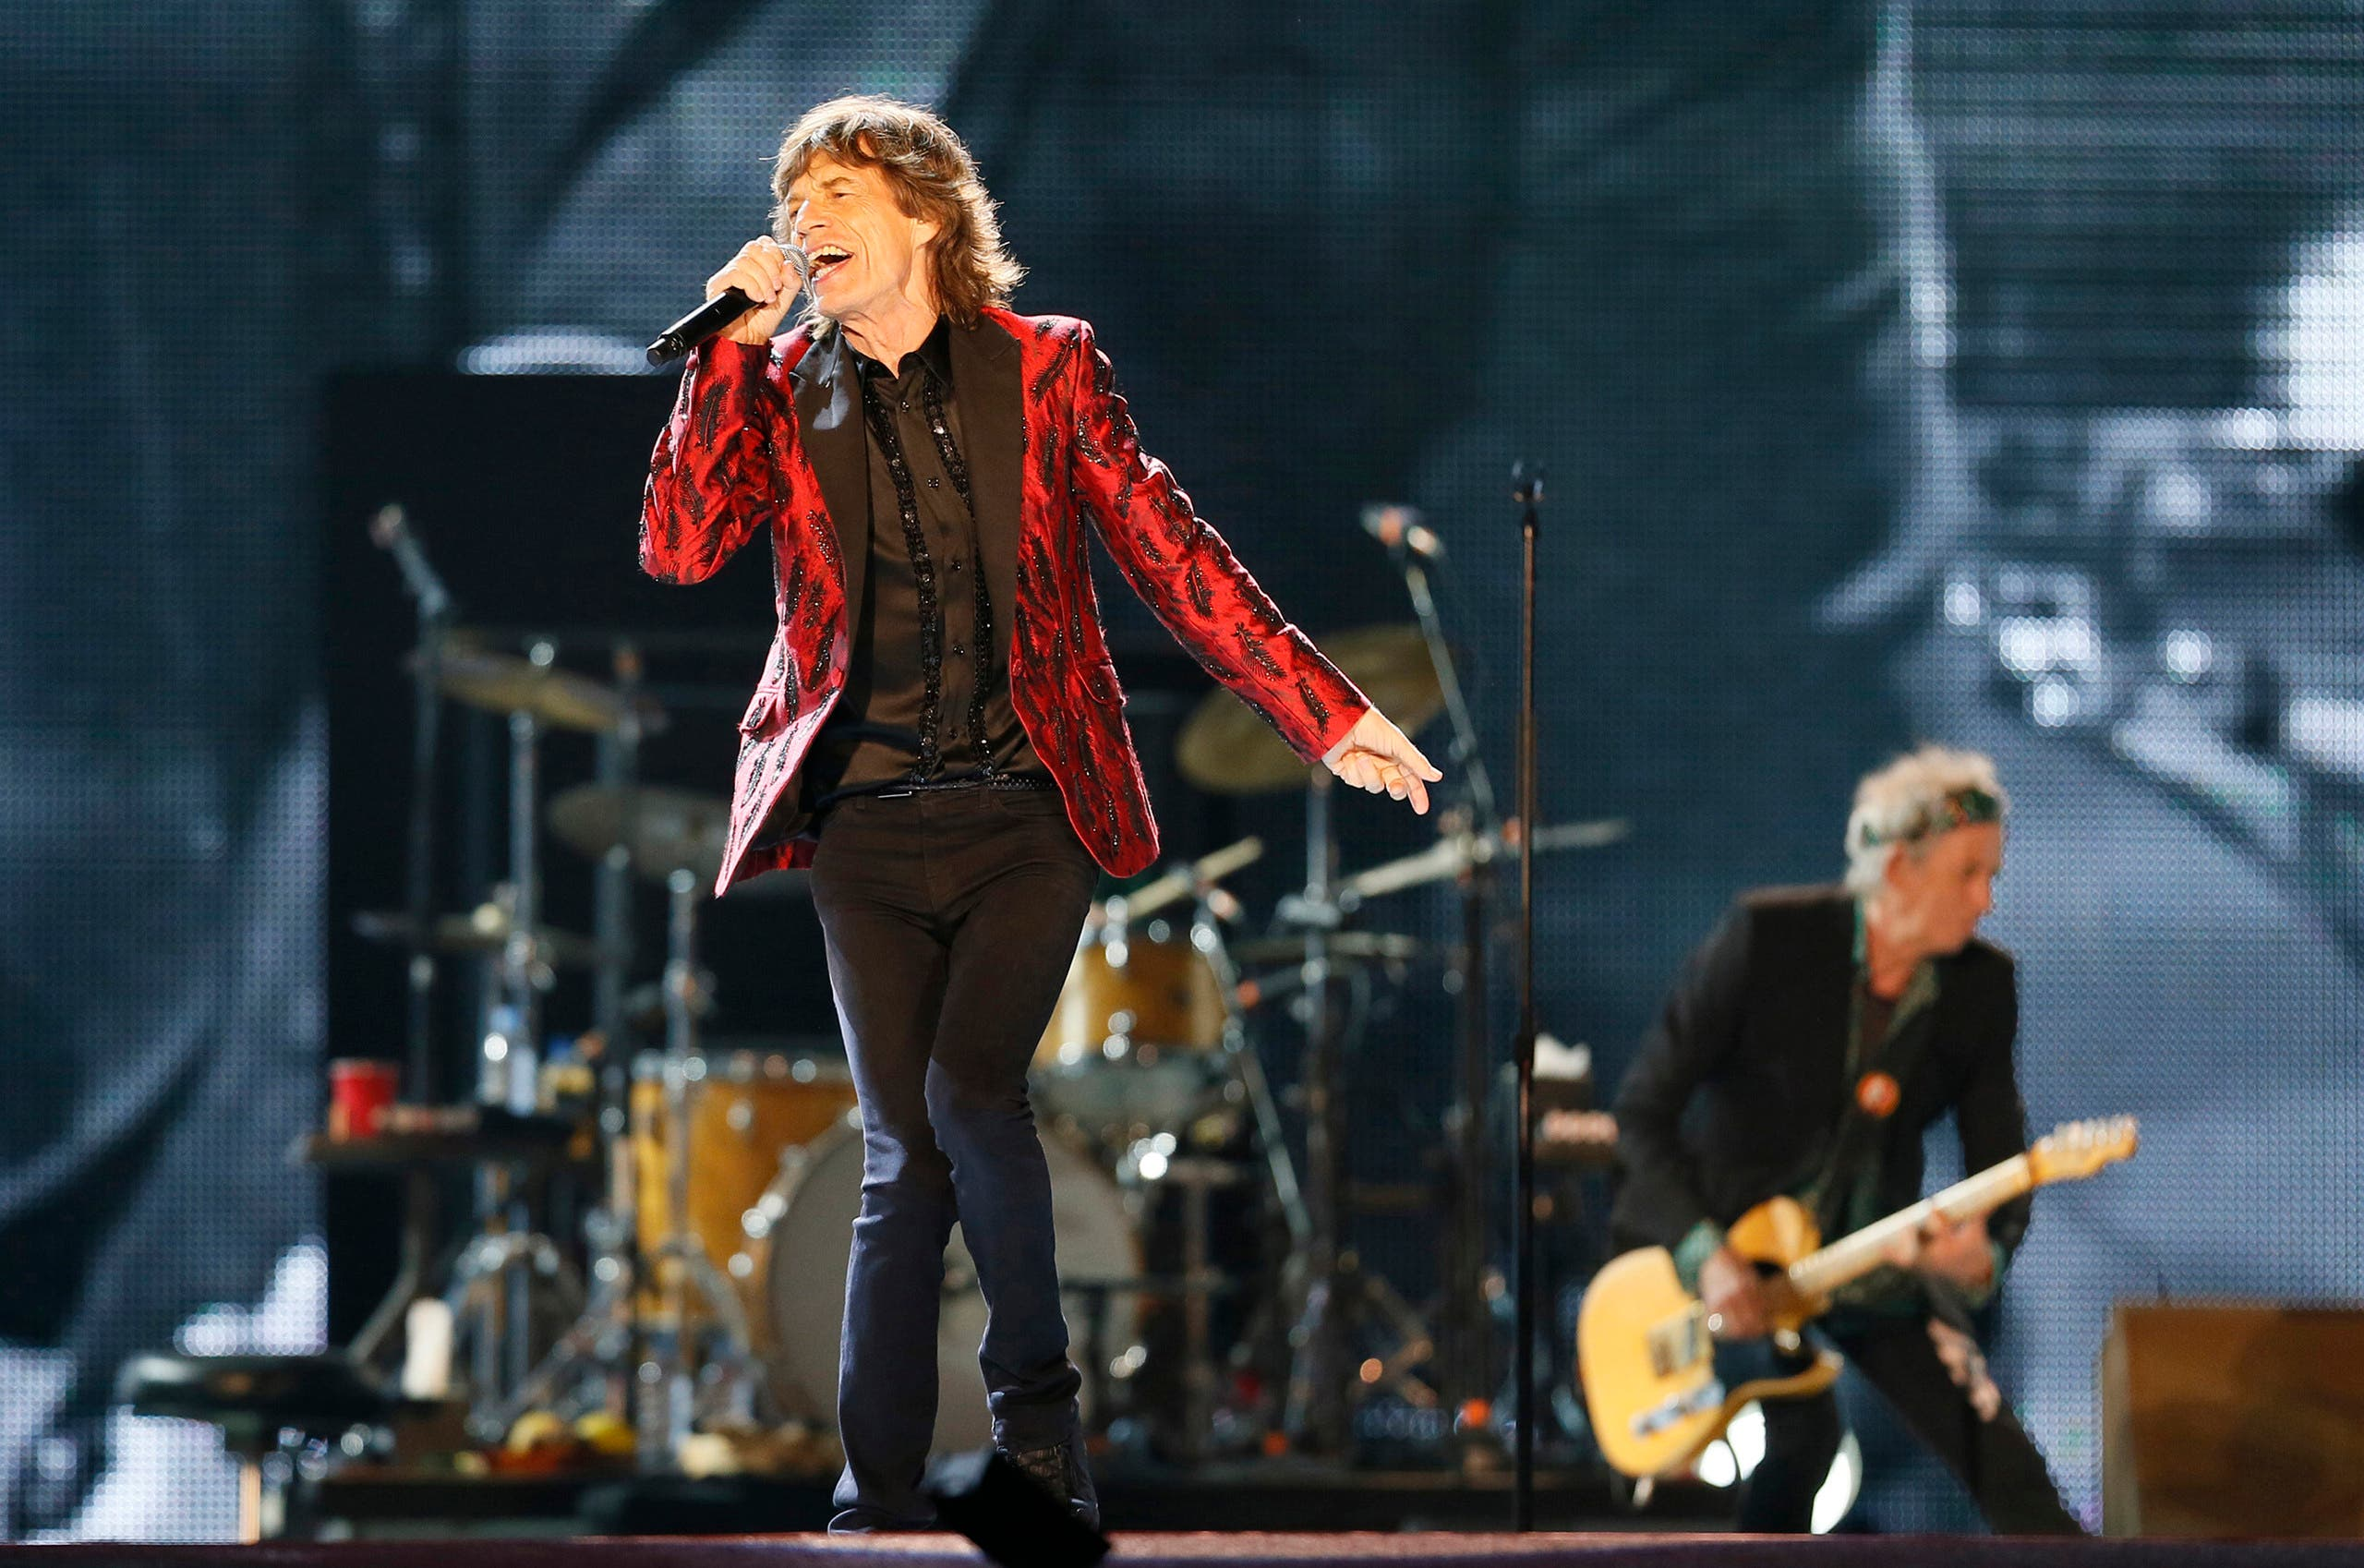 Mick Jagger of the Rolling Stones performs during a concert in Abu Dhabi in 2014 (AP)